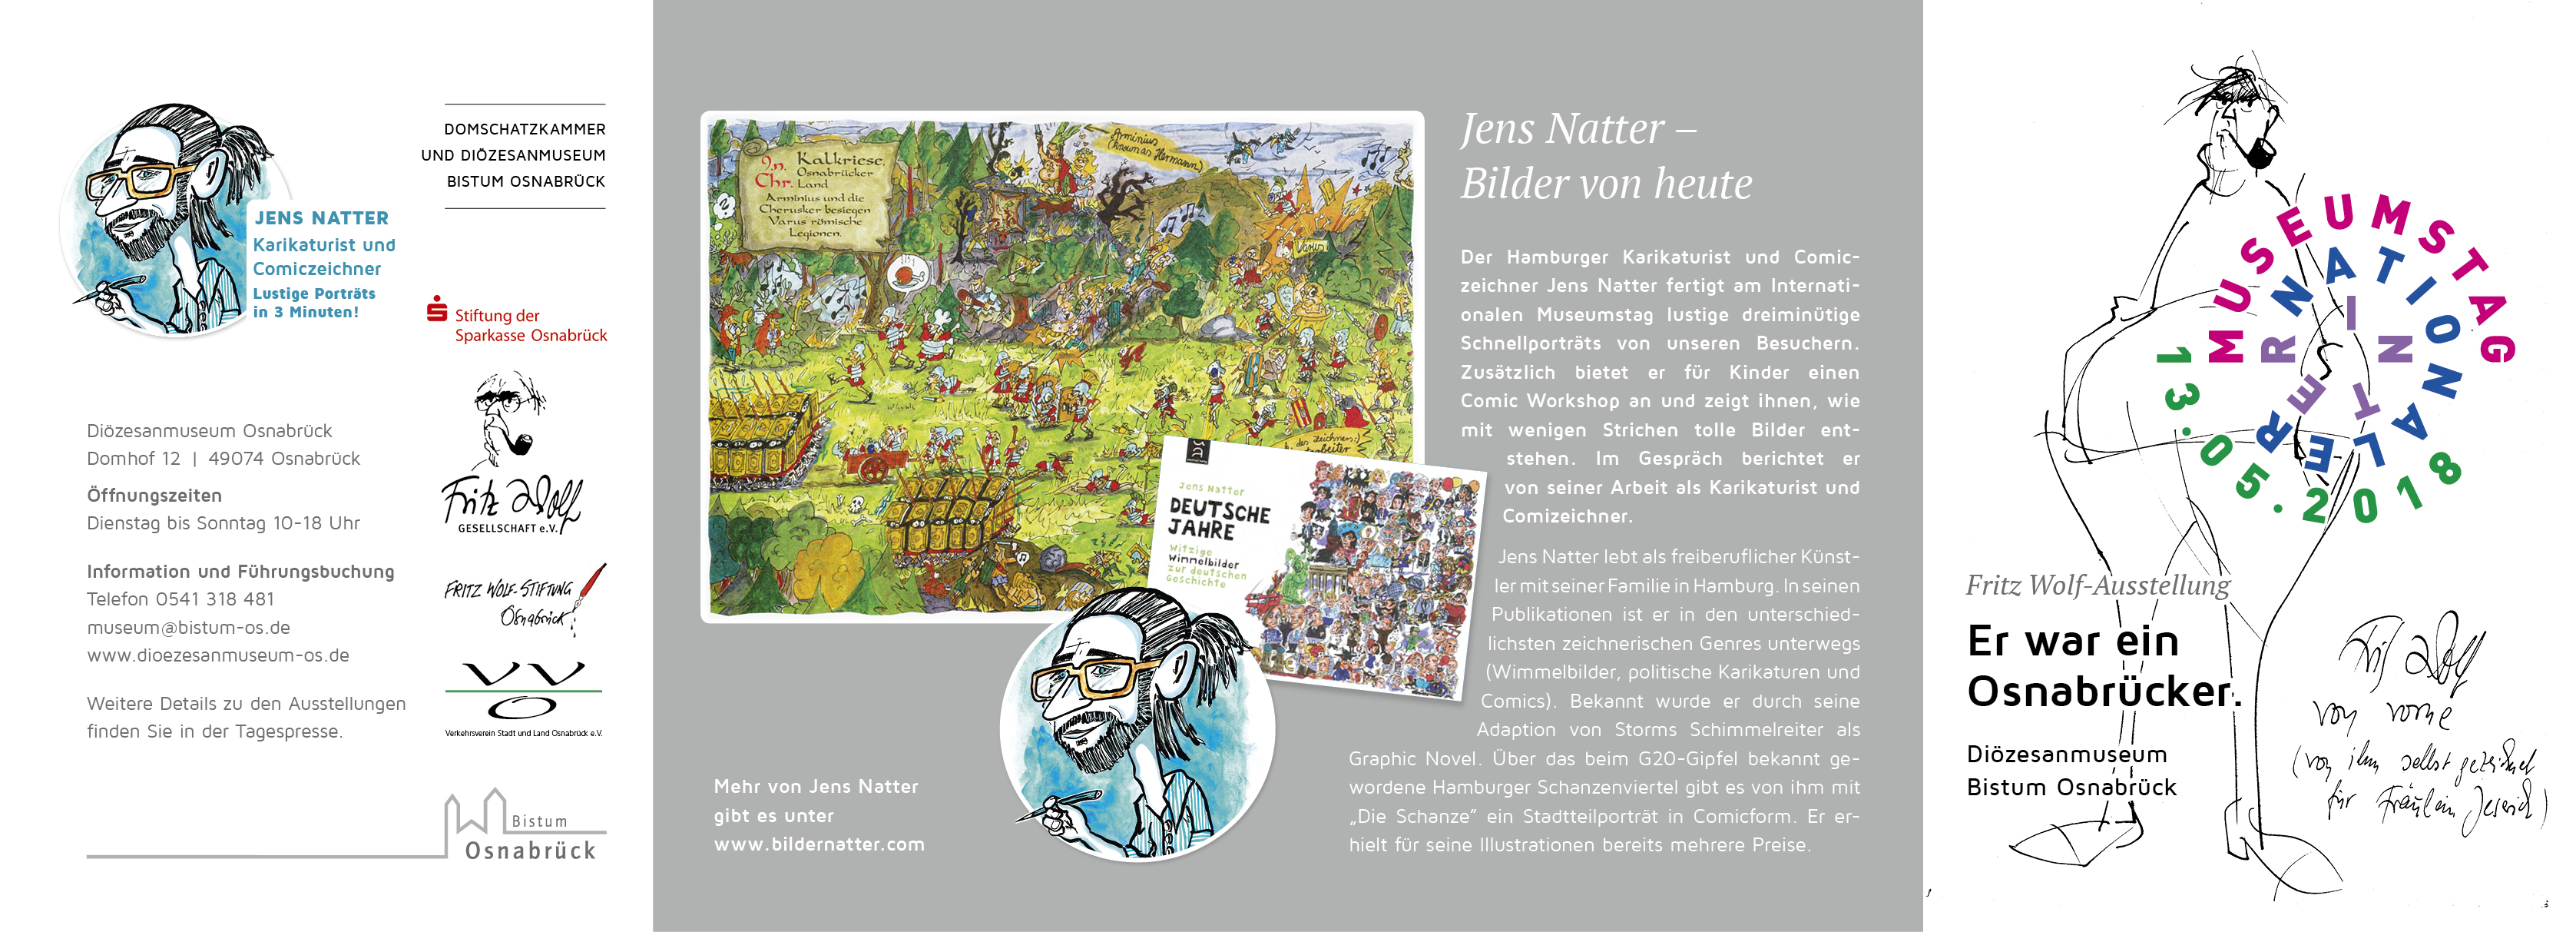 Flyer_Fritz-Wolf_Museumstag